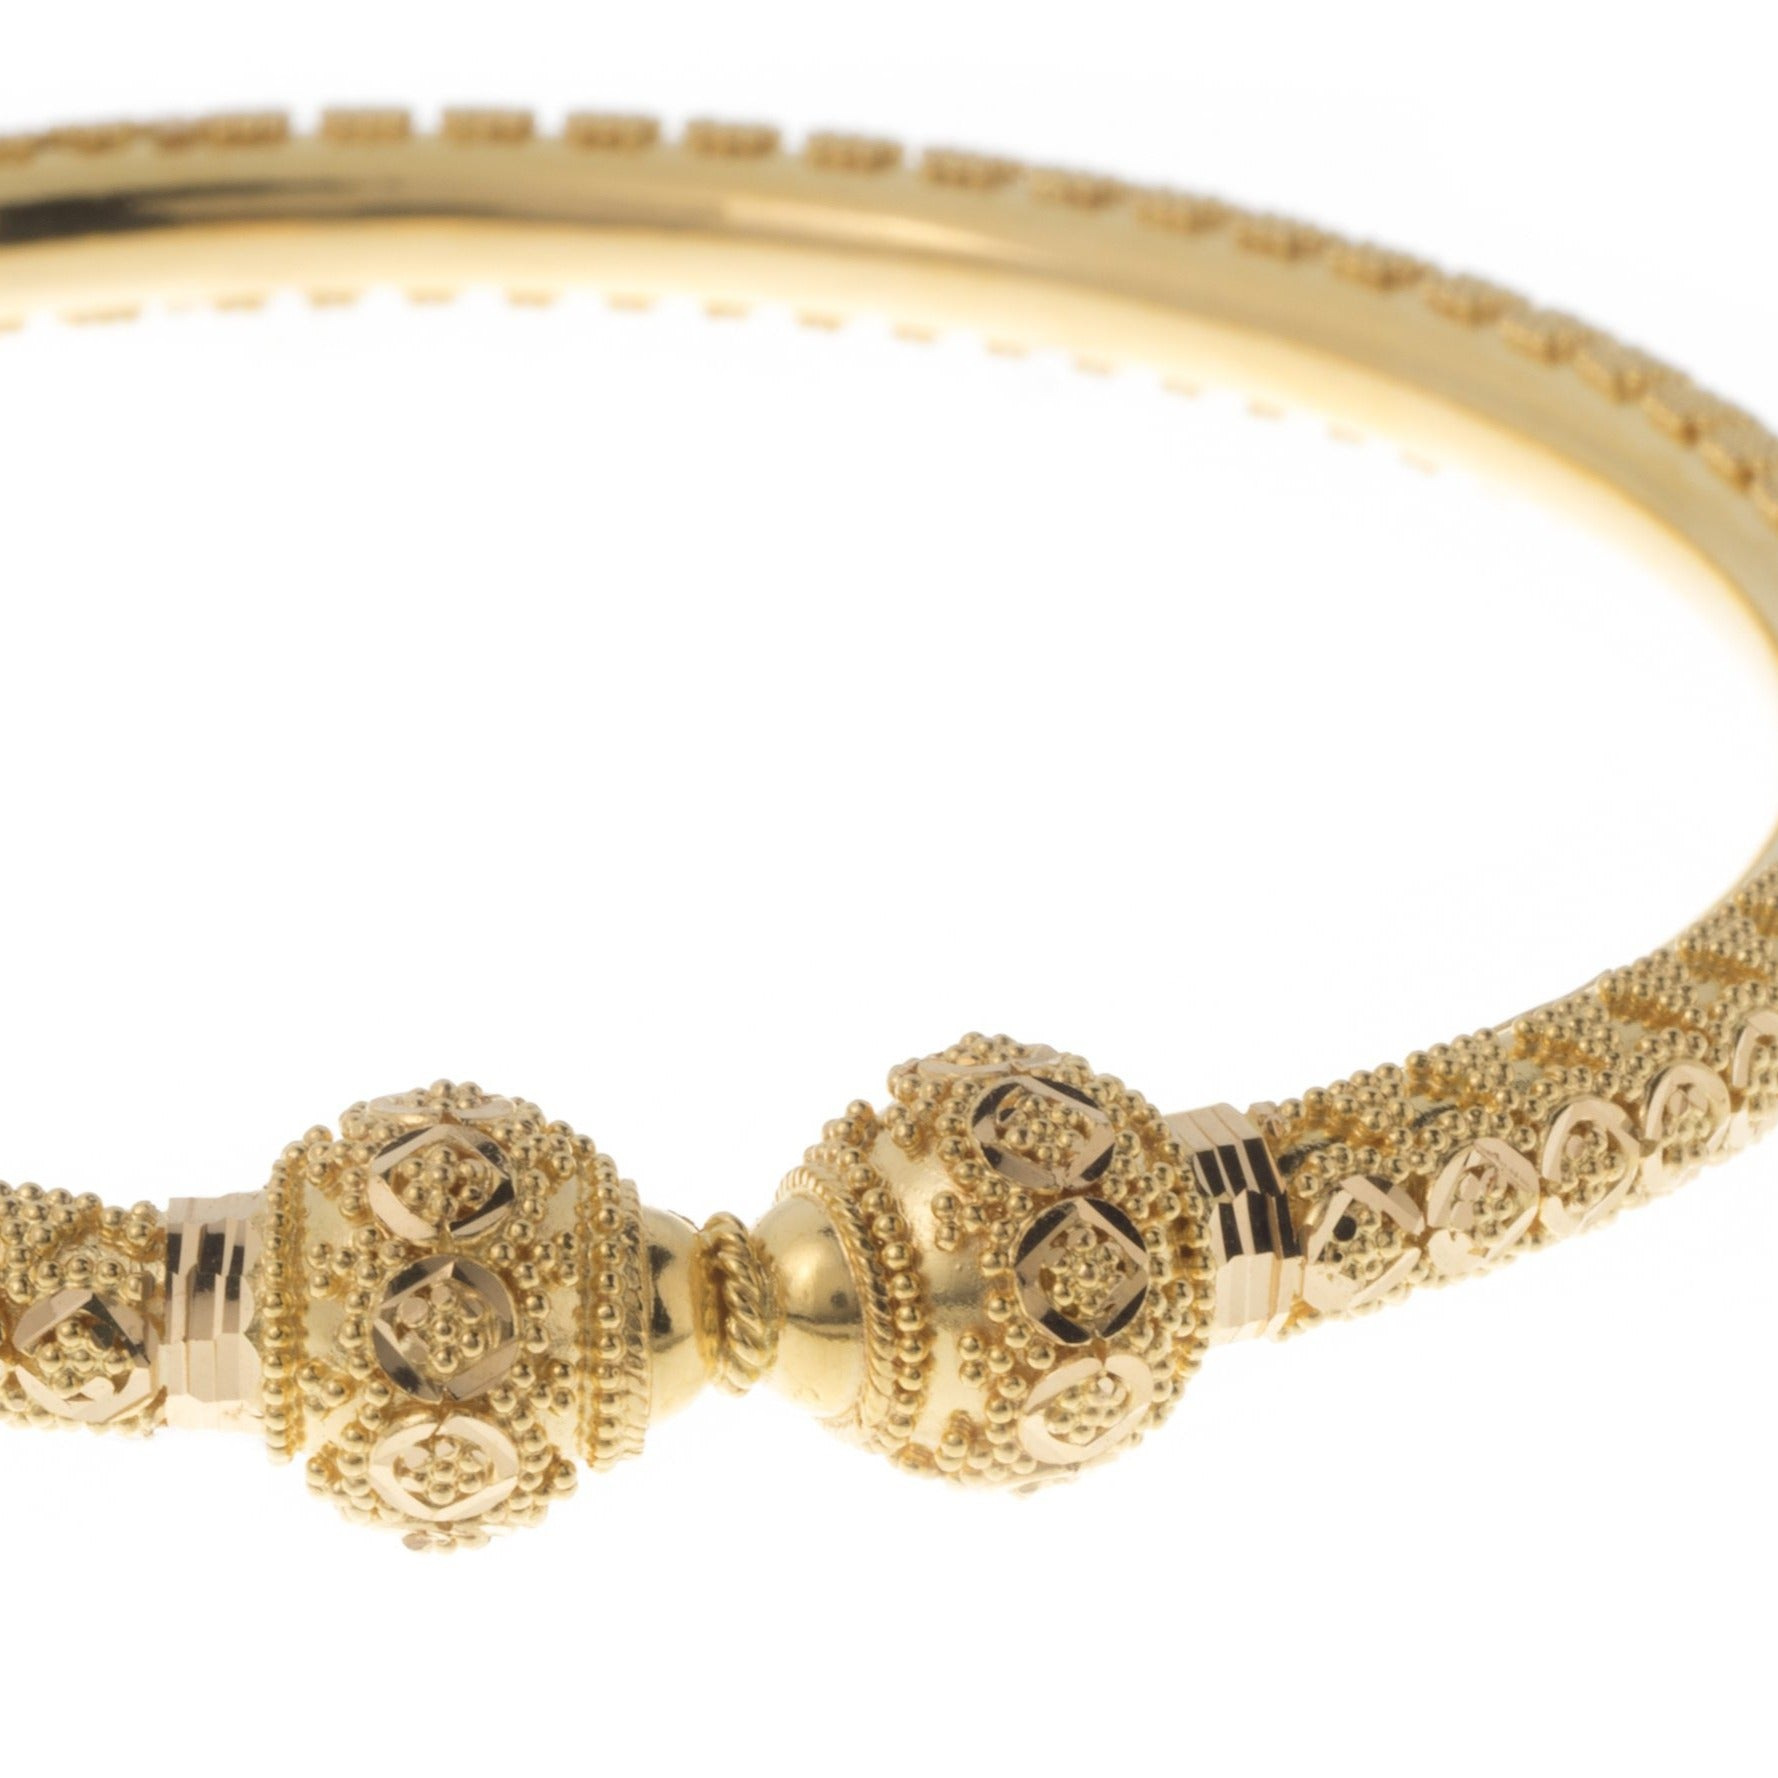 22ct Gold Bangles with Diamond Cut Design and Comfort Fit B-7402